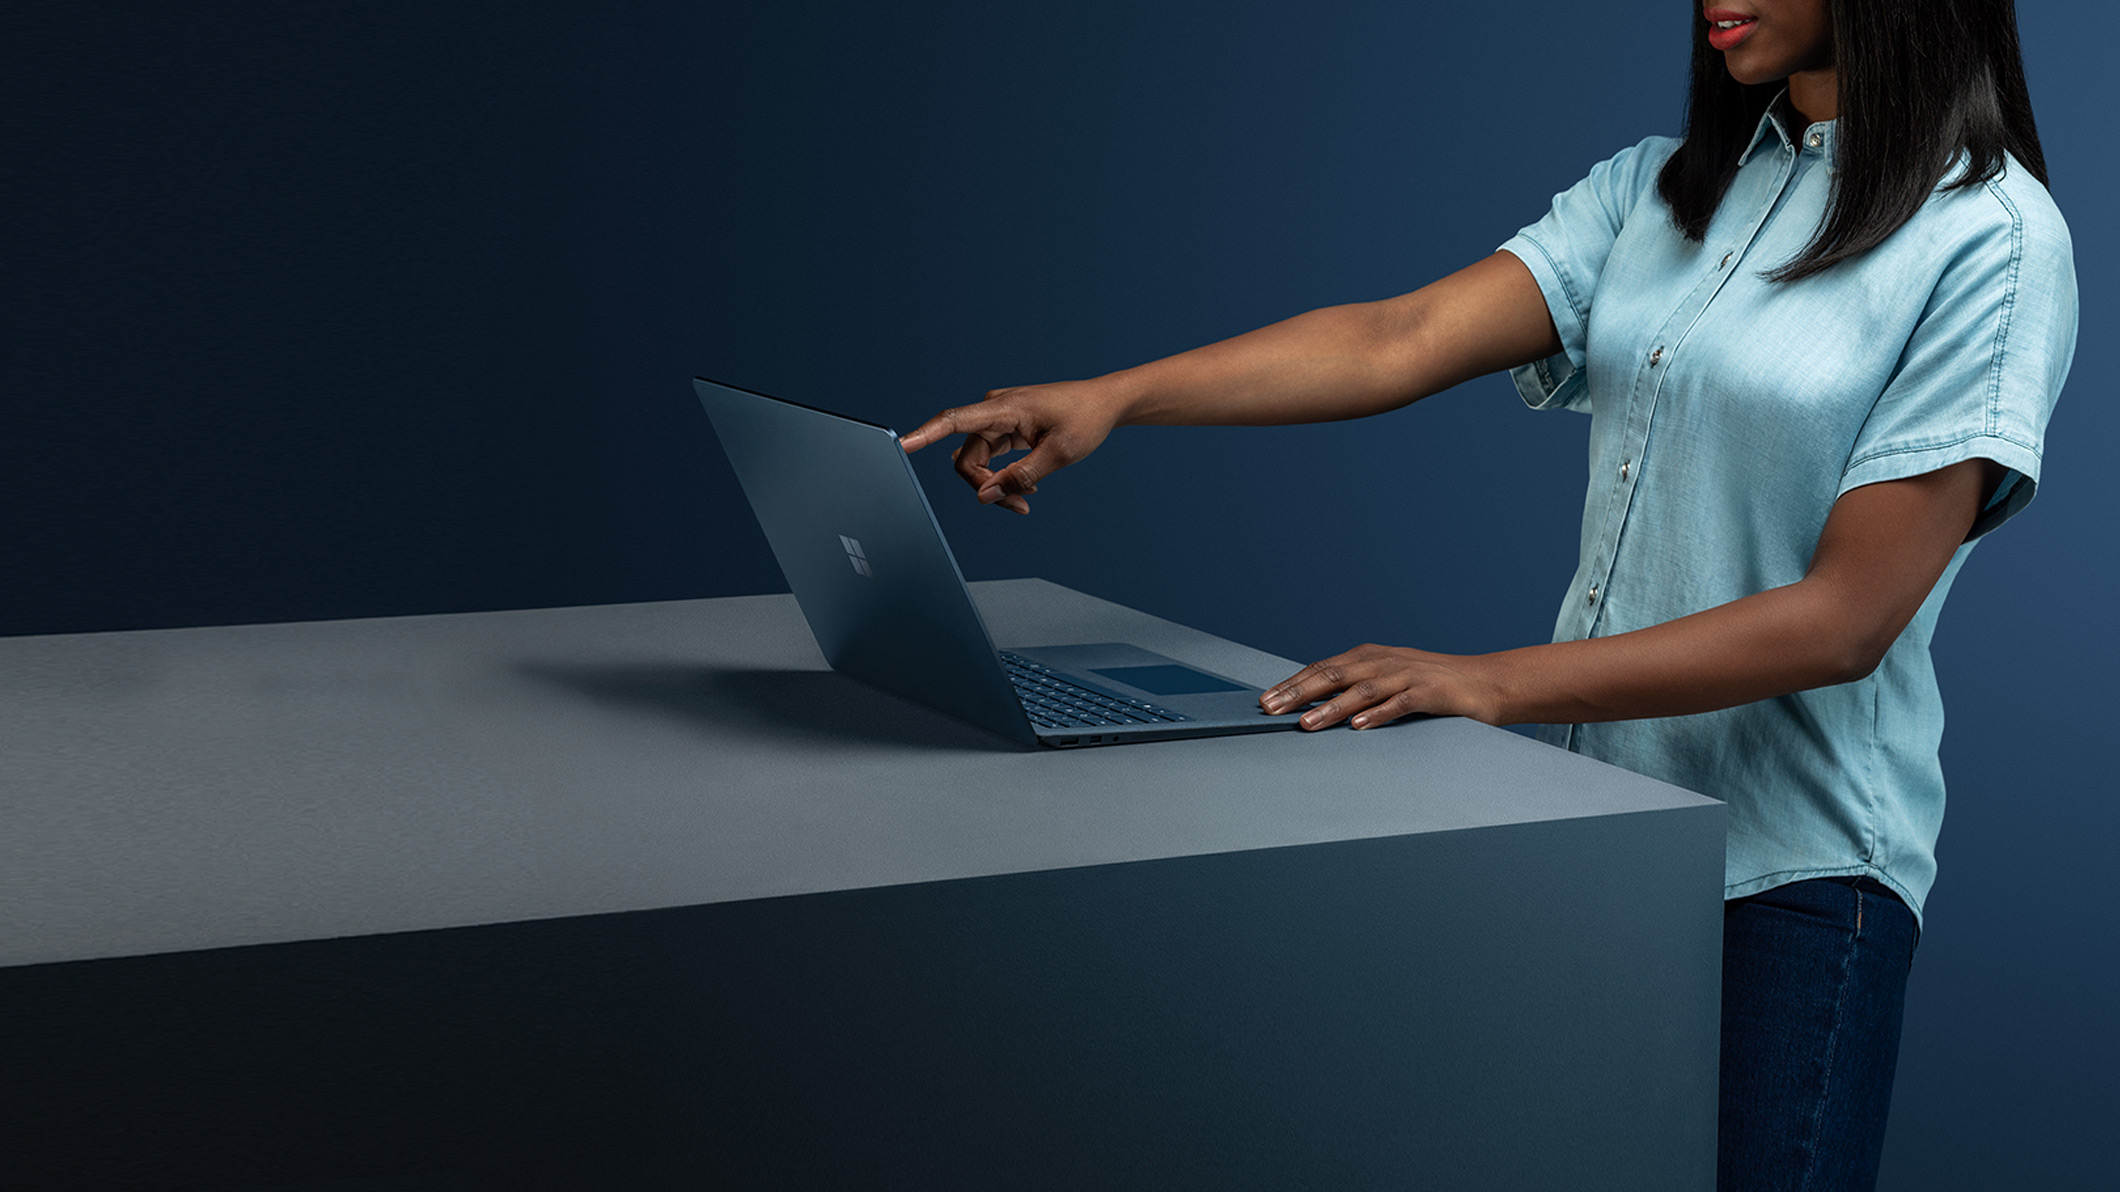 A woman in blue shirt touches the screen of a Surface Laptop 2 in Cobalt